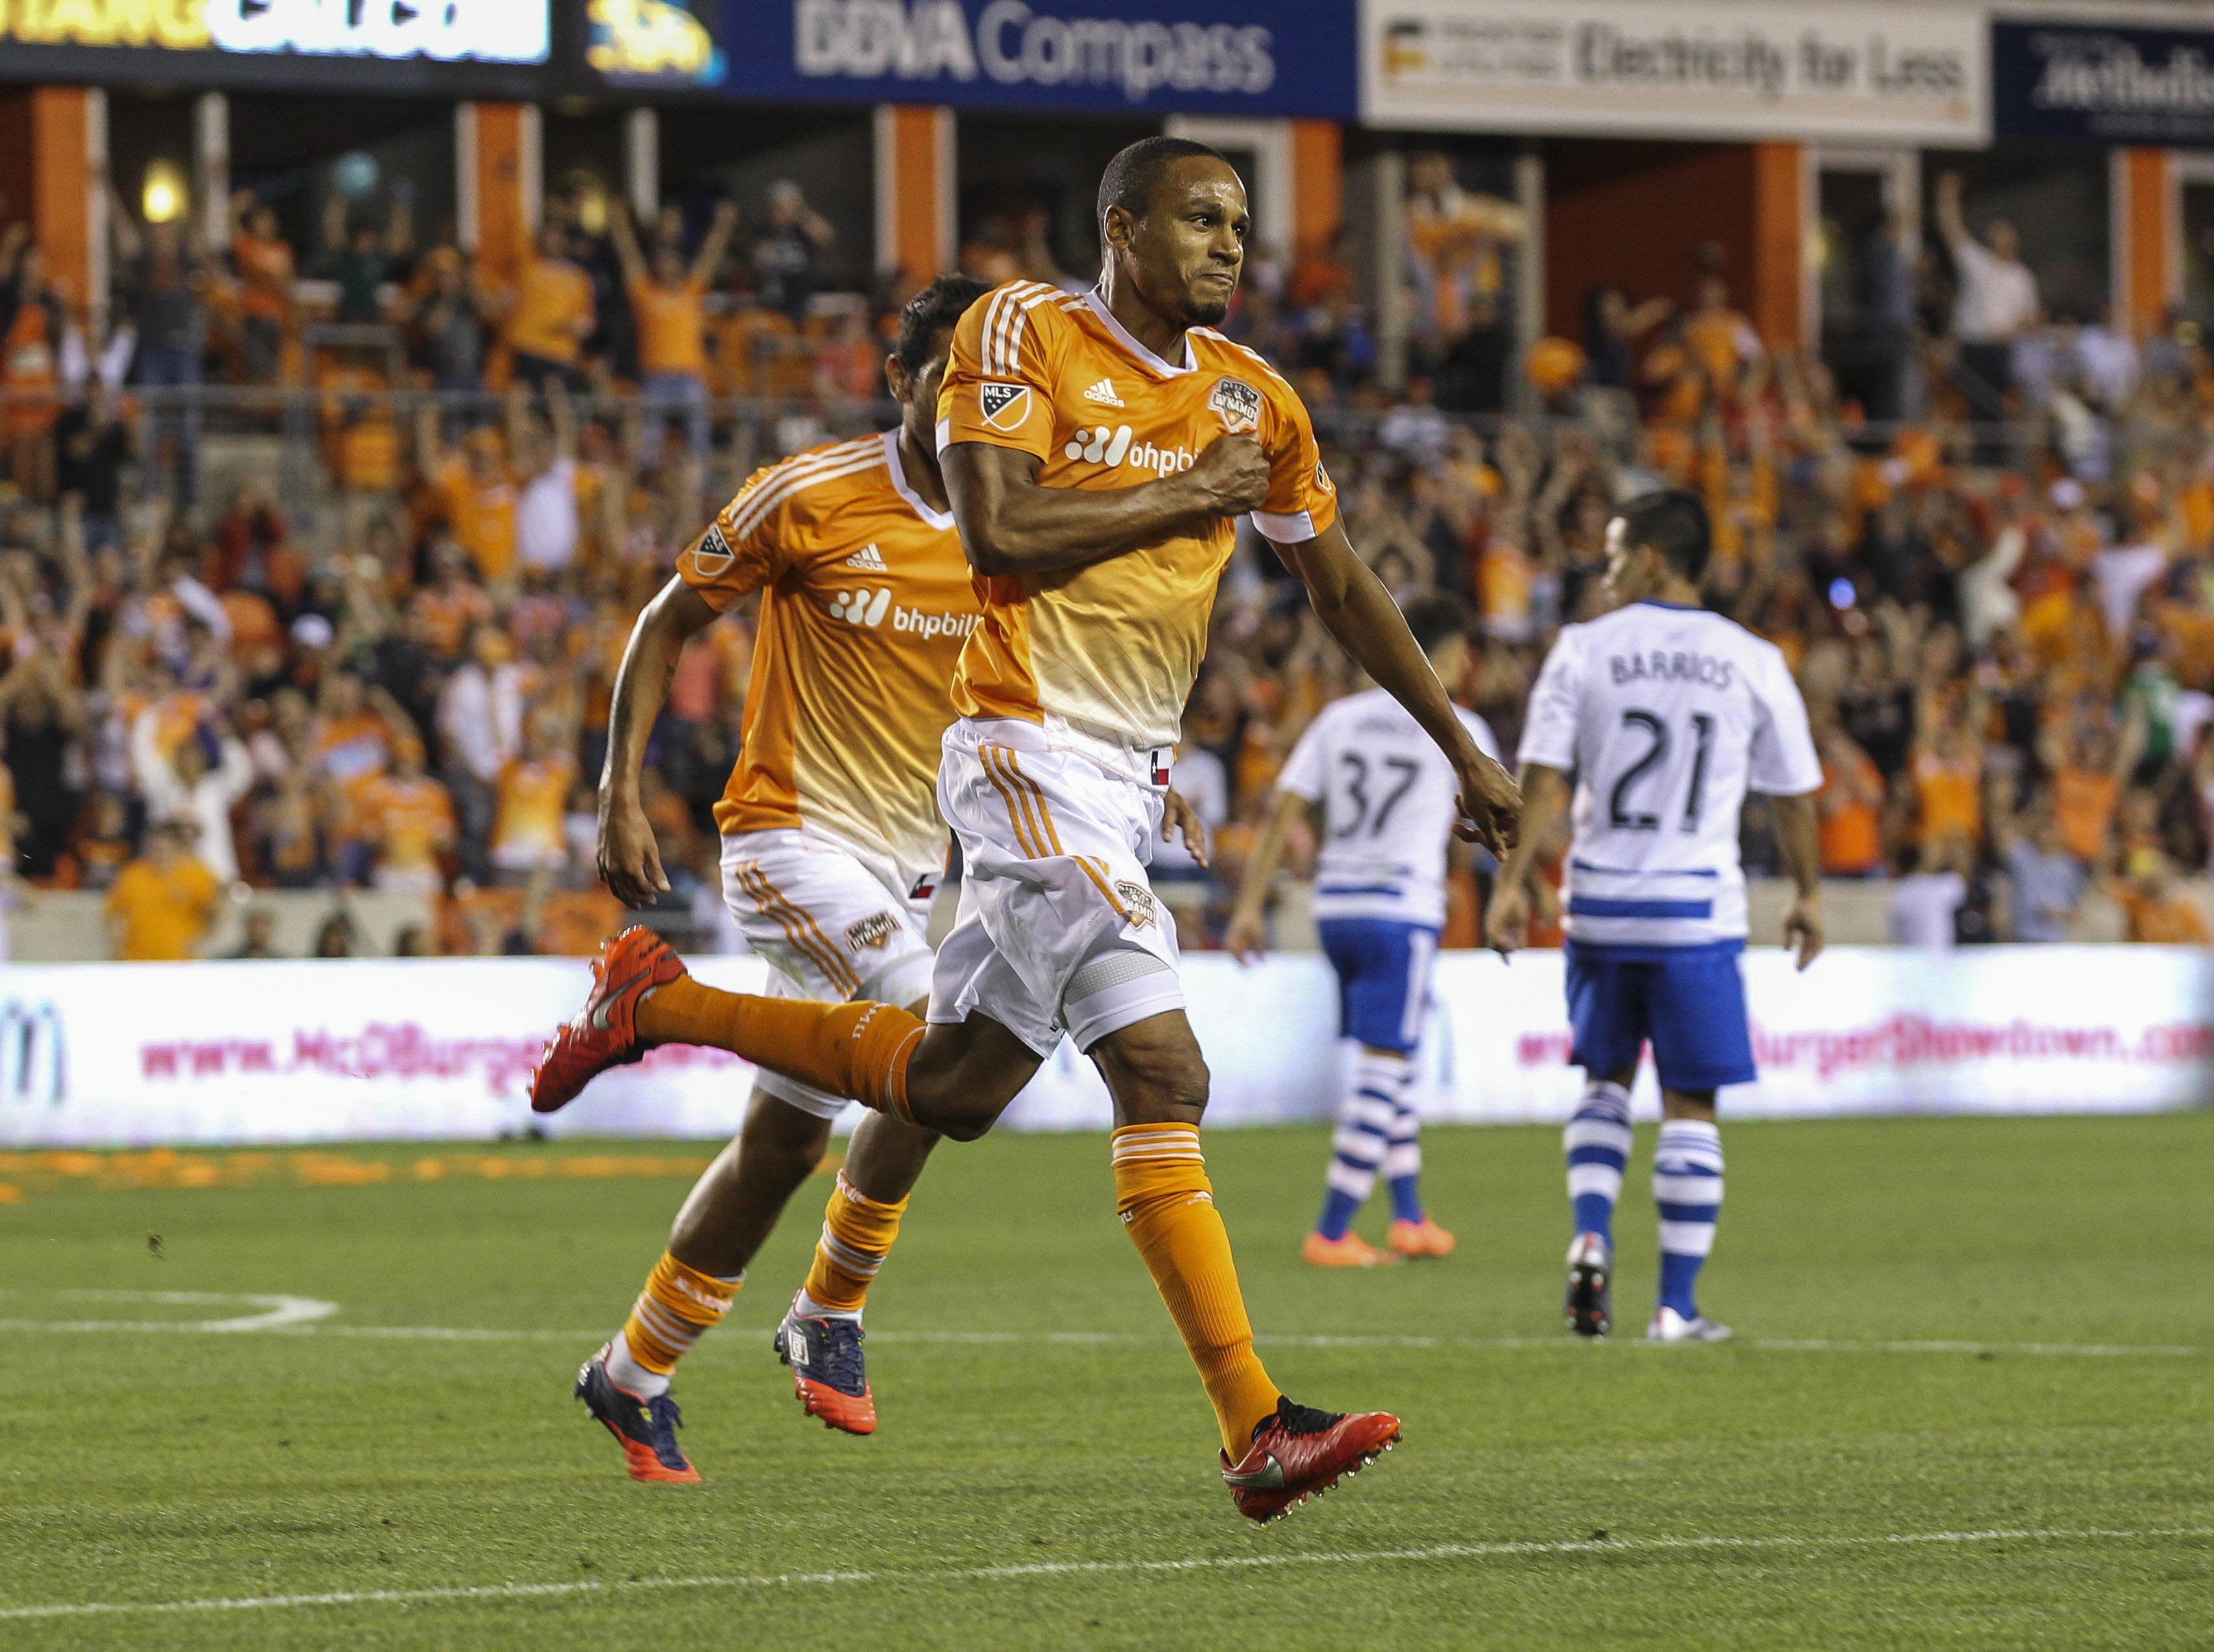 Ricardo Clark celebrates his goal while Michael Barrios (21) and Maxi Urruti (37) sulk in the background. Both were partially at fault.